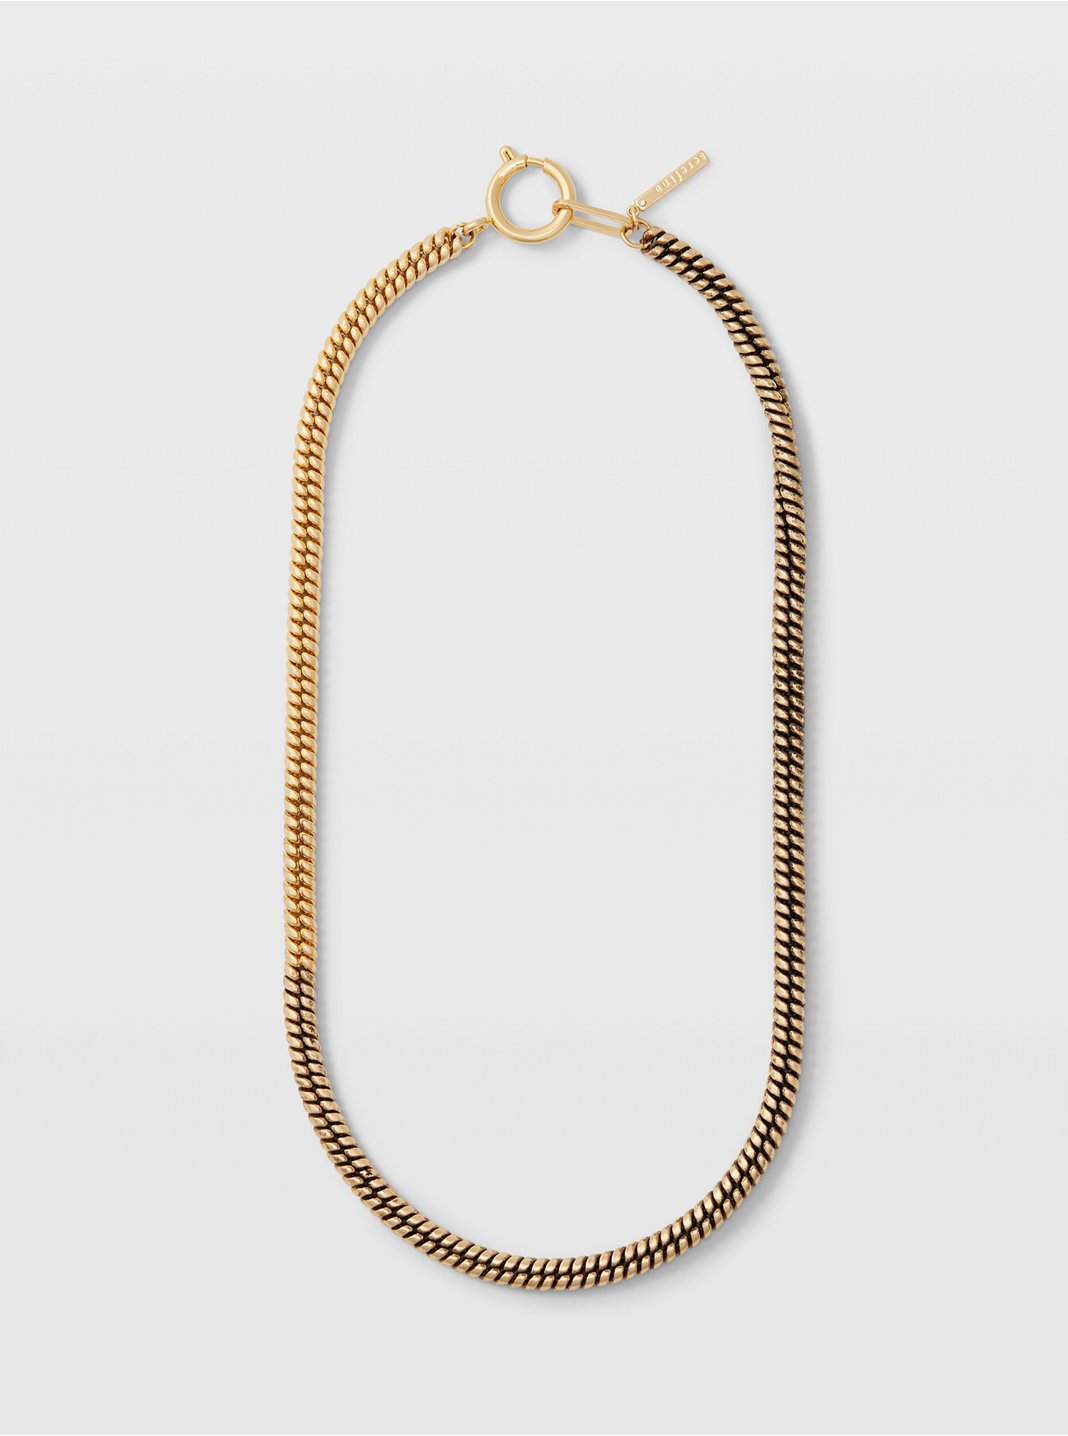 Serefina Ombré Chain Necklace